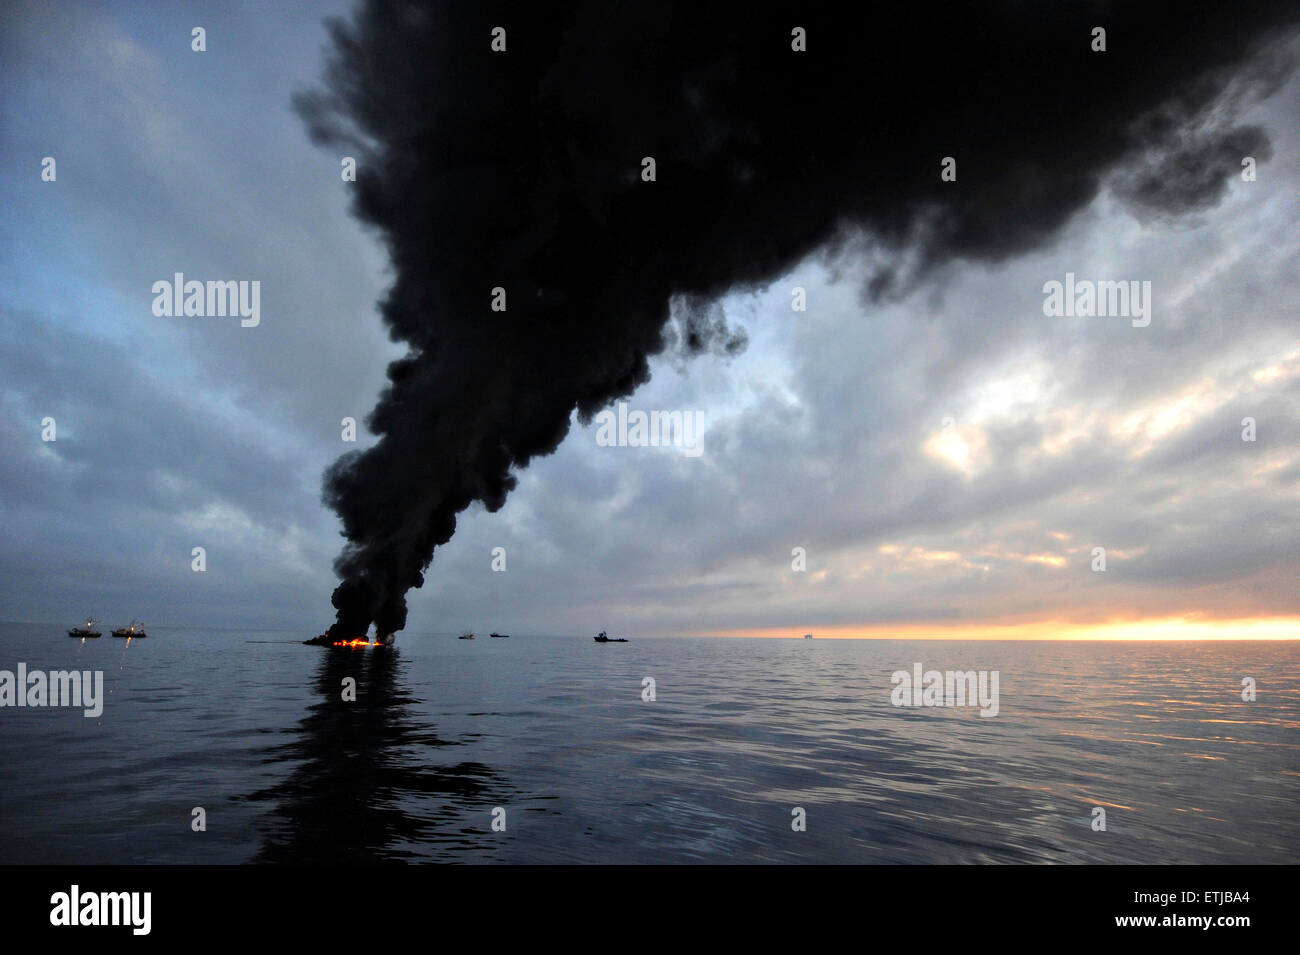 Dark clouds fill the sky as clean up crews conduct controlled burns of oil gathered from the surface of the Gulf - Stock Image